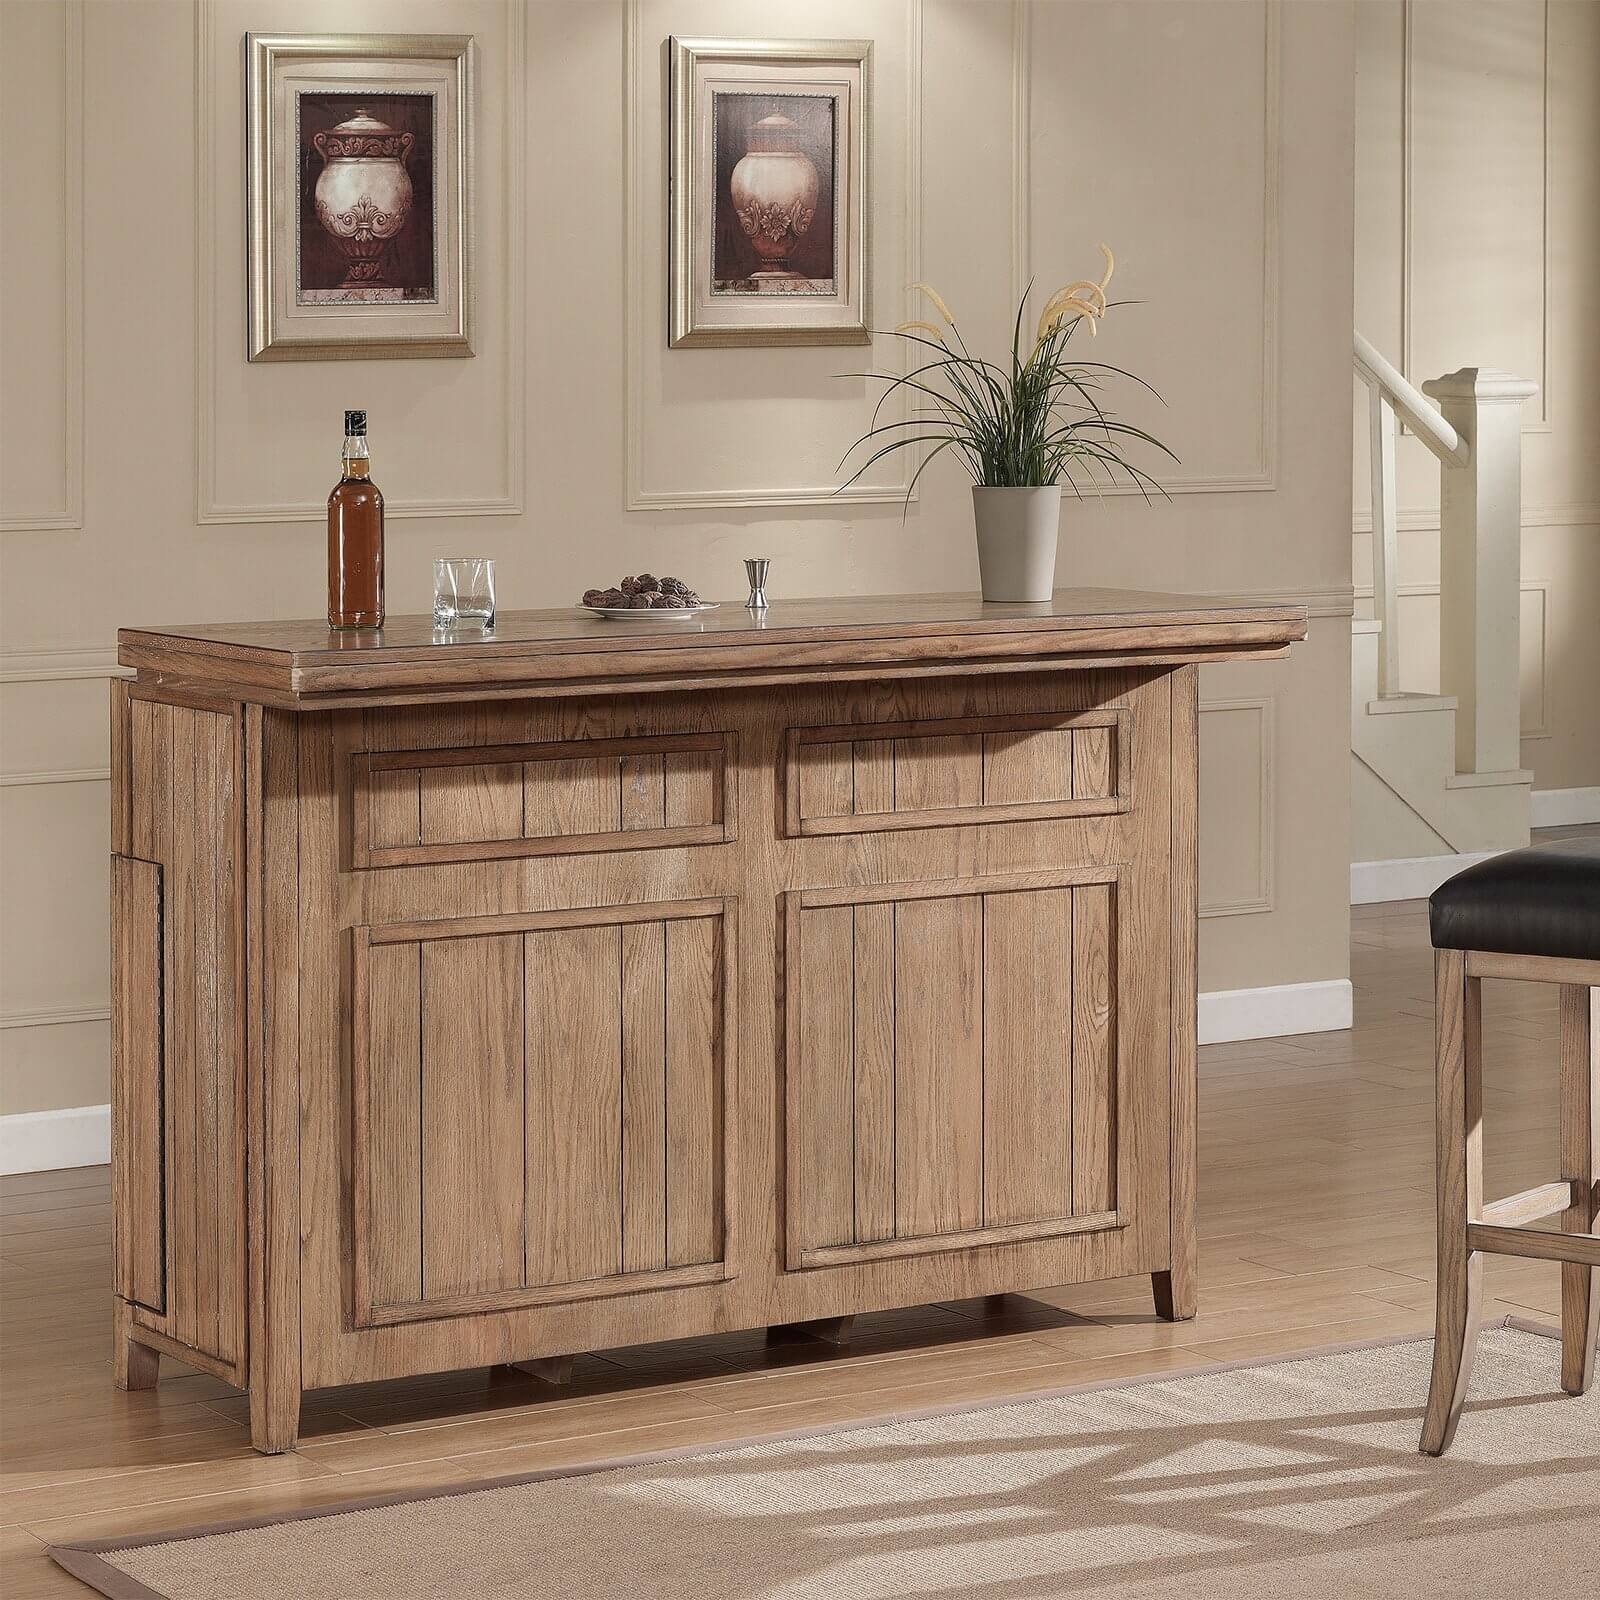 High Quality As You Can See, The Amount Of Storage In This Rustic Home Bar Cabinet Unit